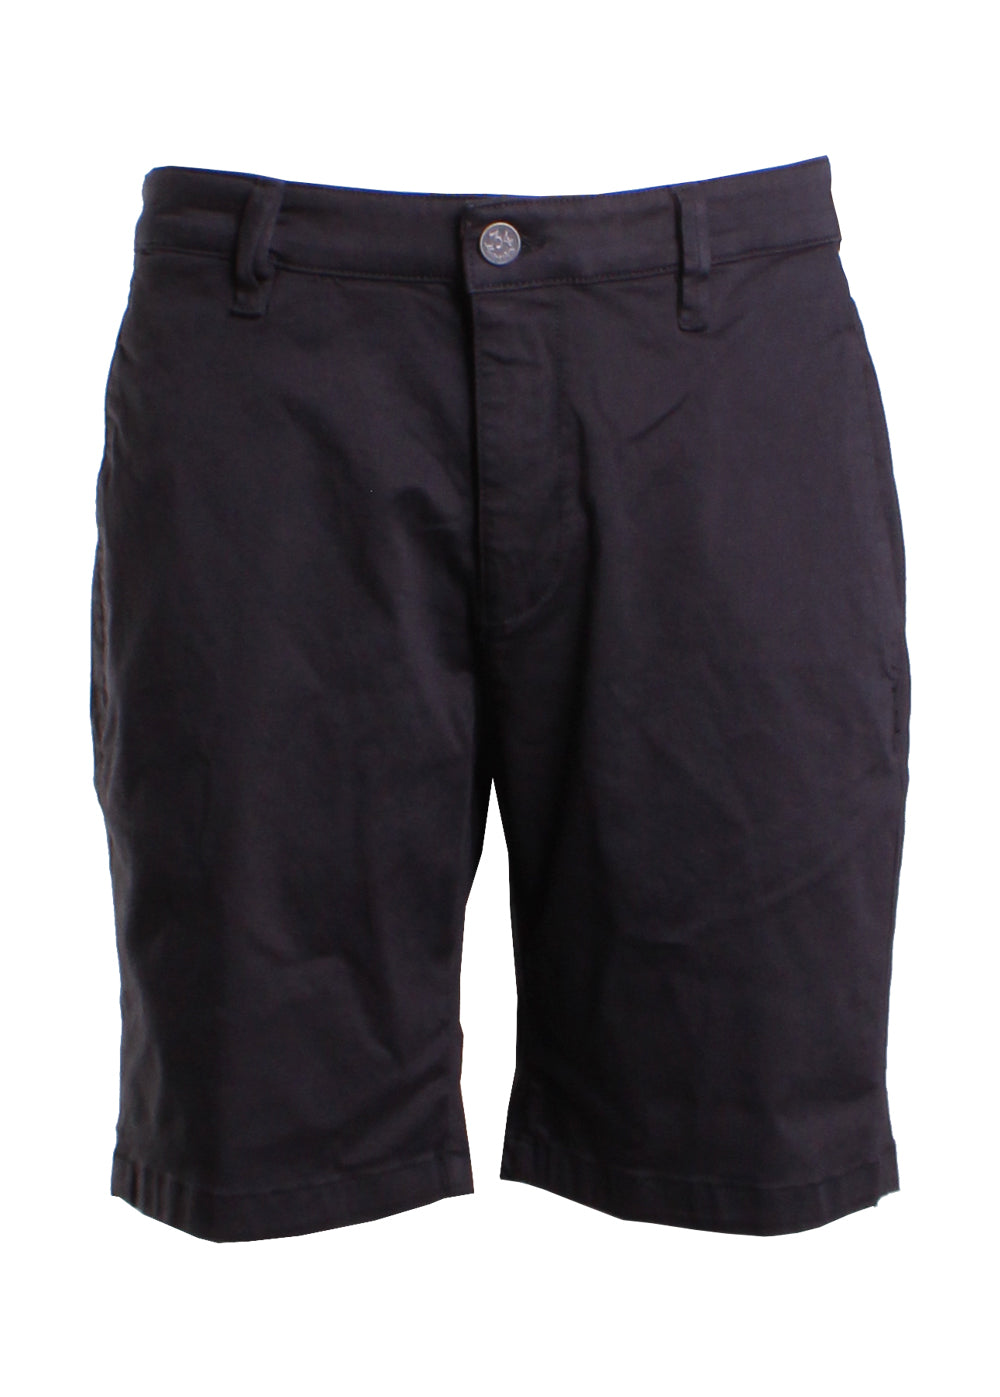 34 Heritage Nevada Shorts in Black Twill